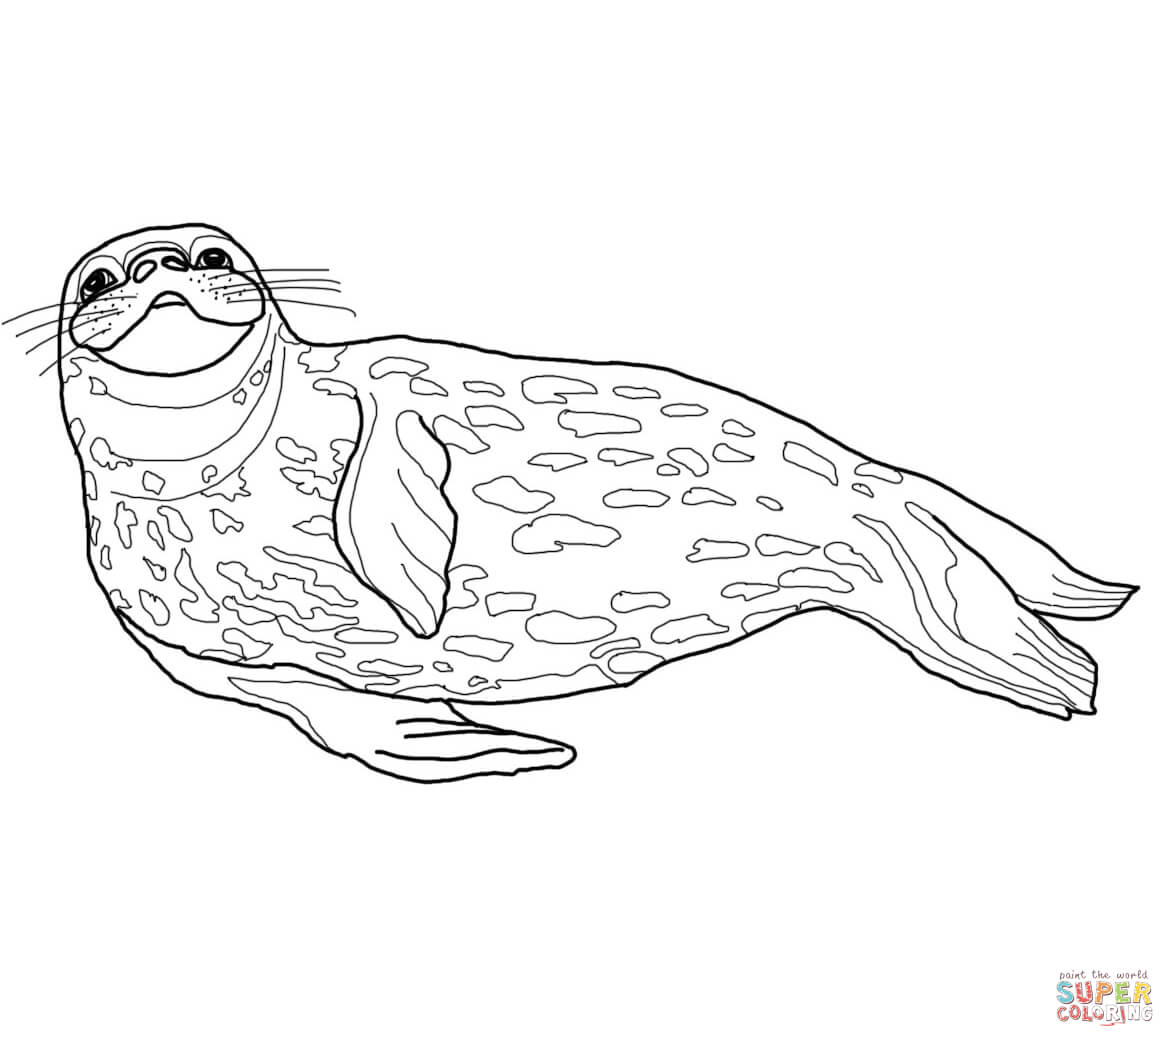 Seal clipart weddell seal. Coloring page free printable